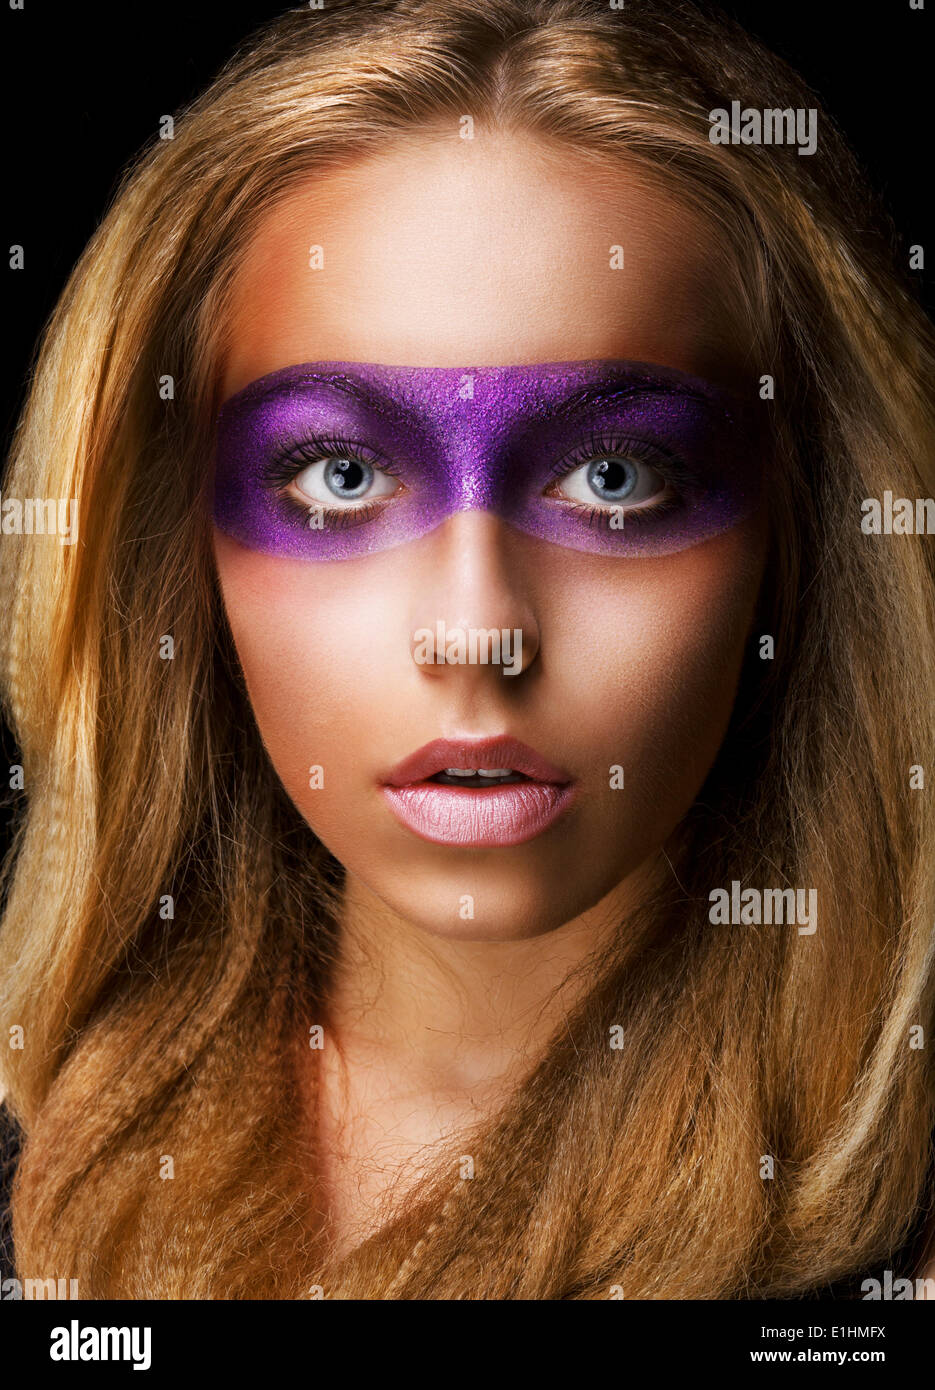 Portrait of Style woman with Vivid Violet Make-up. Rainbow - Stock Image